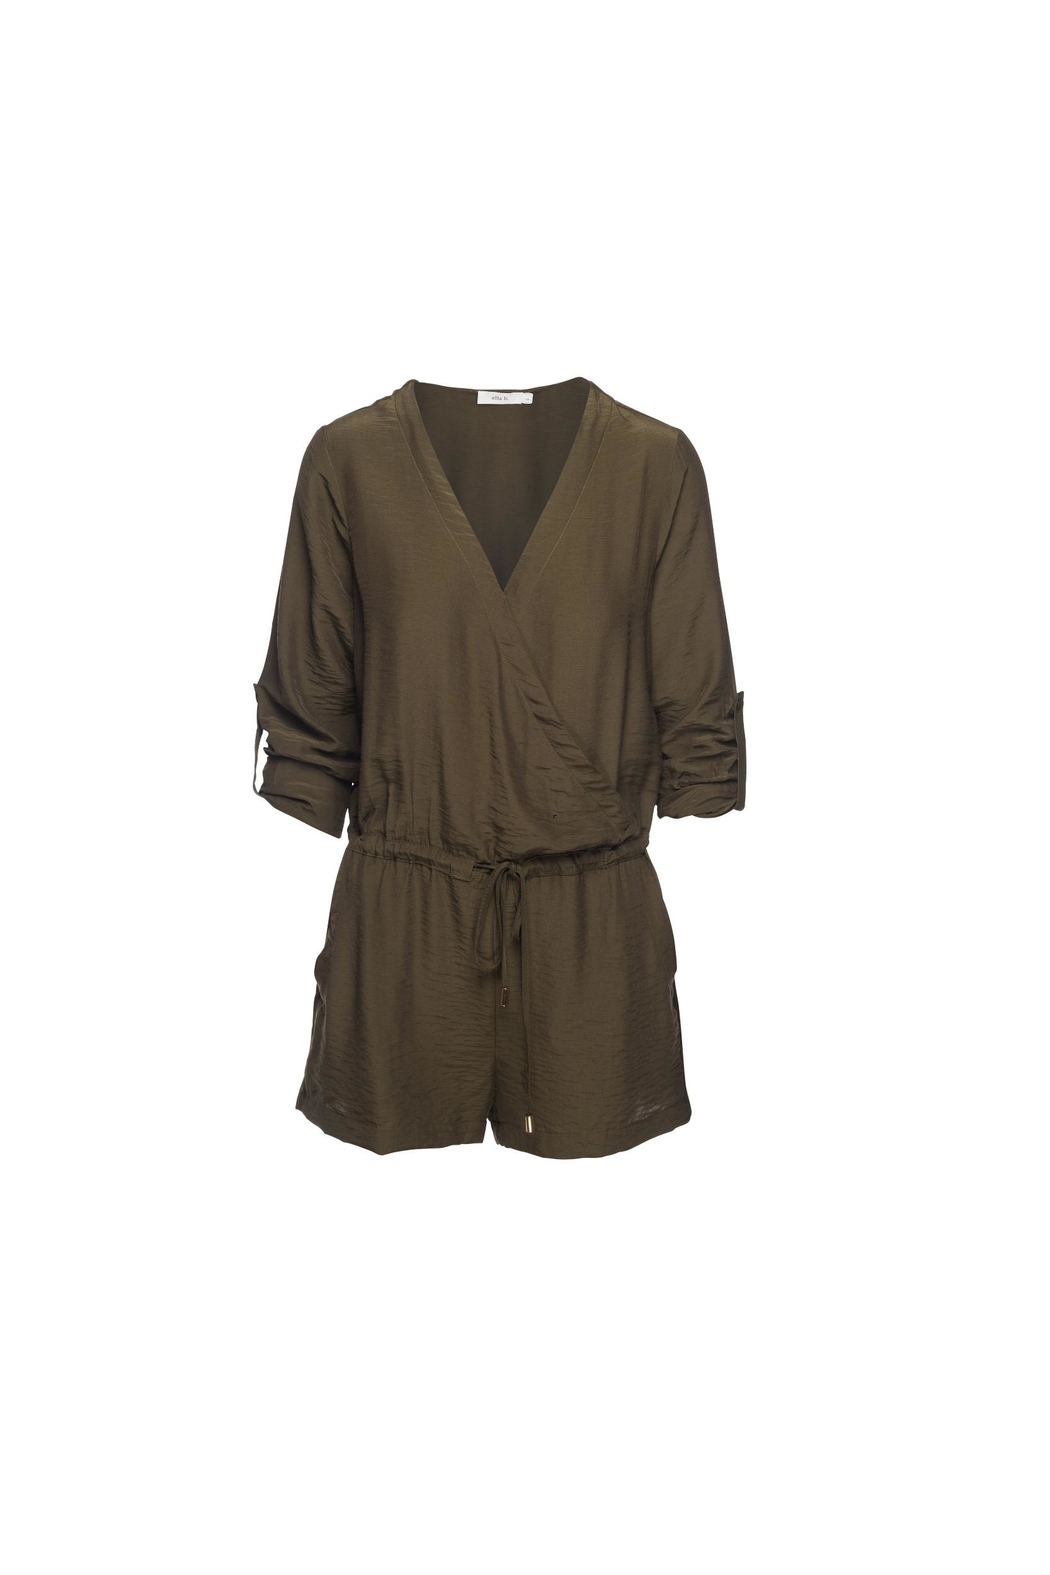 Ella B Cross Front Romper - Front Cropped Image